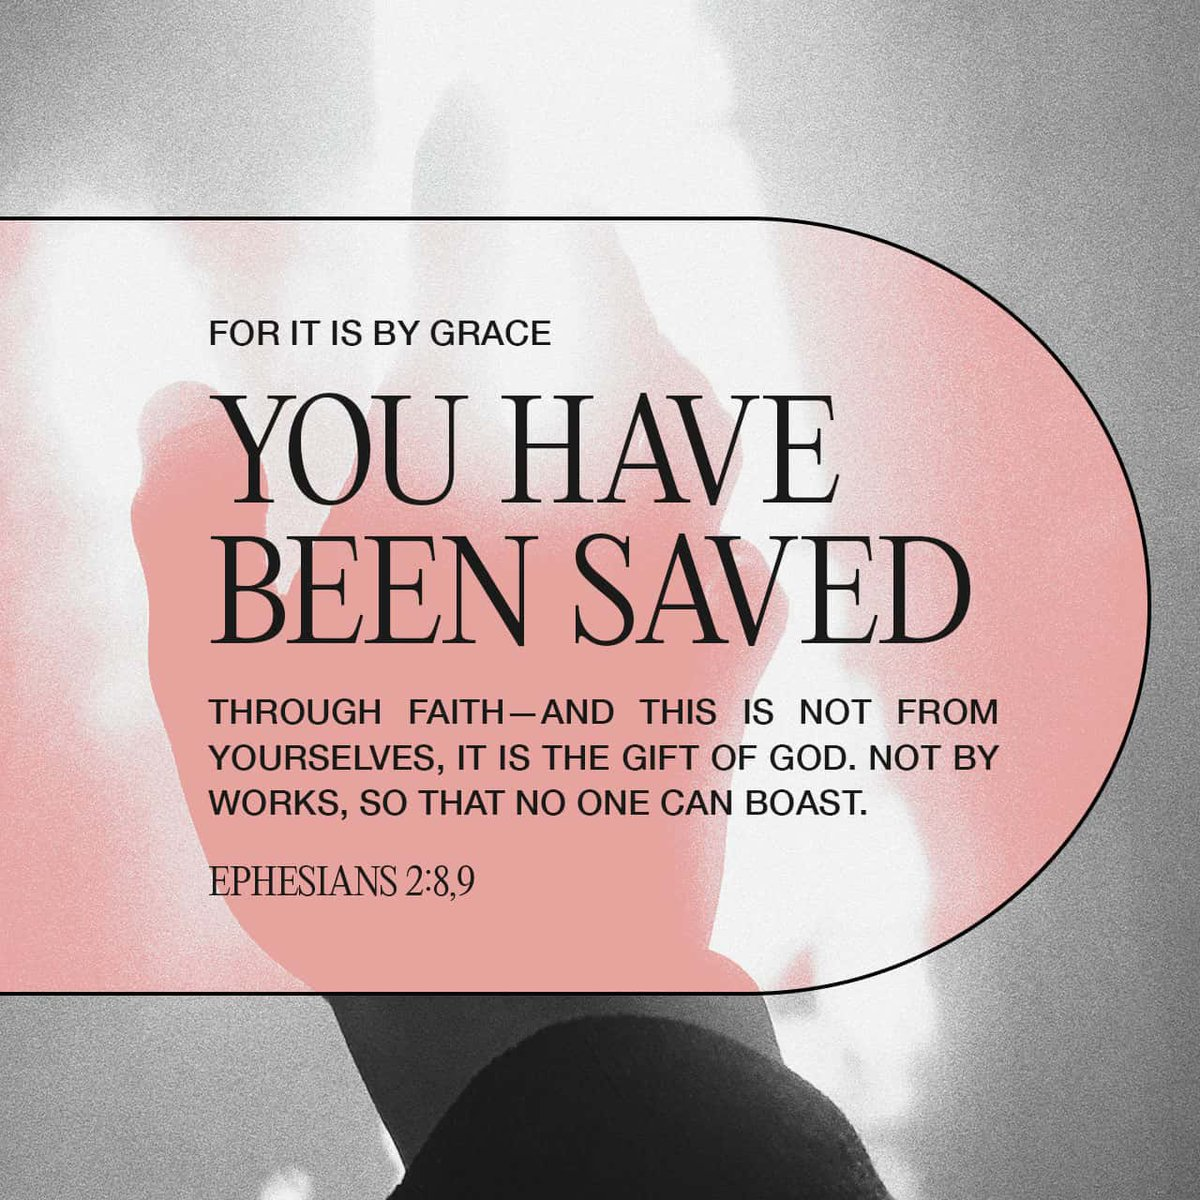 #WednesdayWisdom For by #grace are ye saved through faith; and that not of yourselves: it is the gift of #God  Not of works, lest any man should boast. Ephesians 2:8-9 KJV